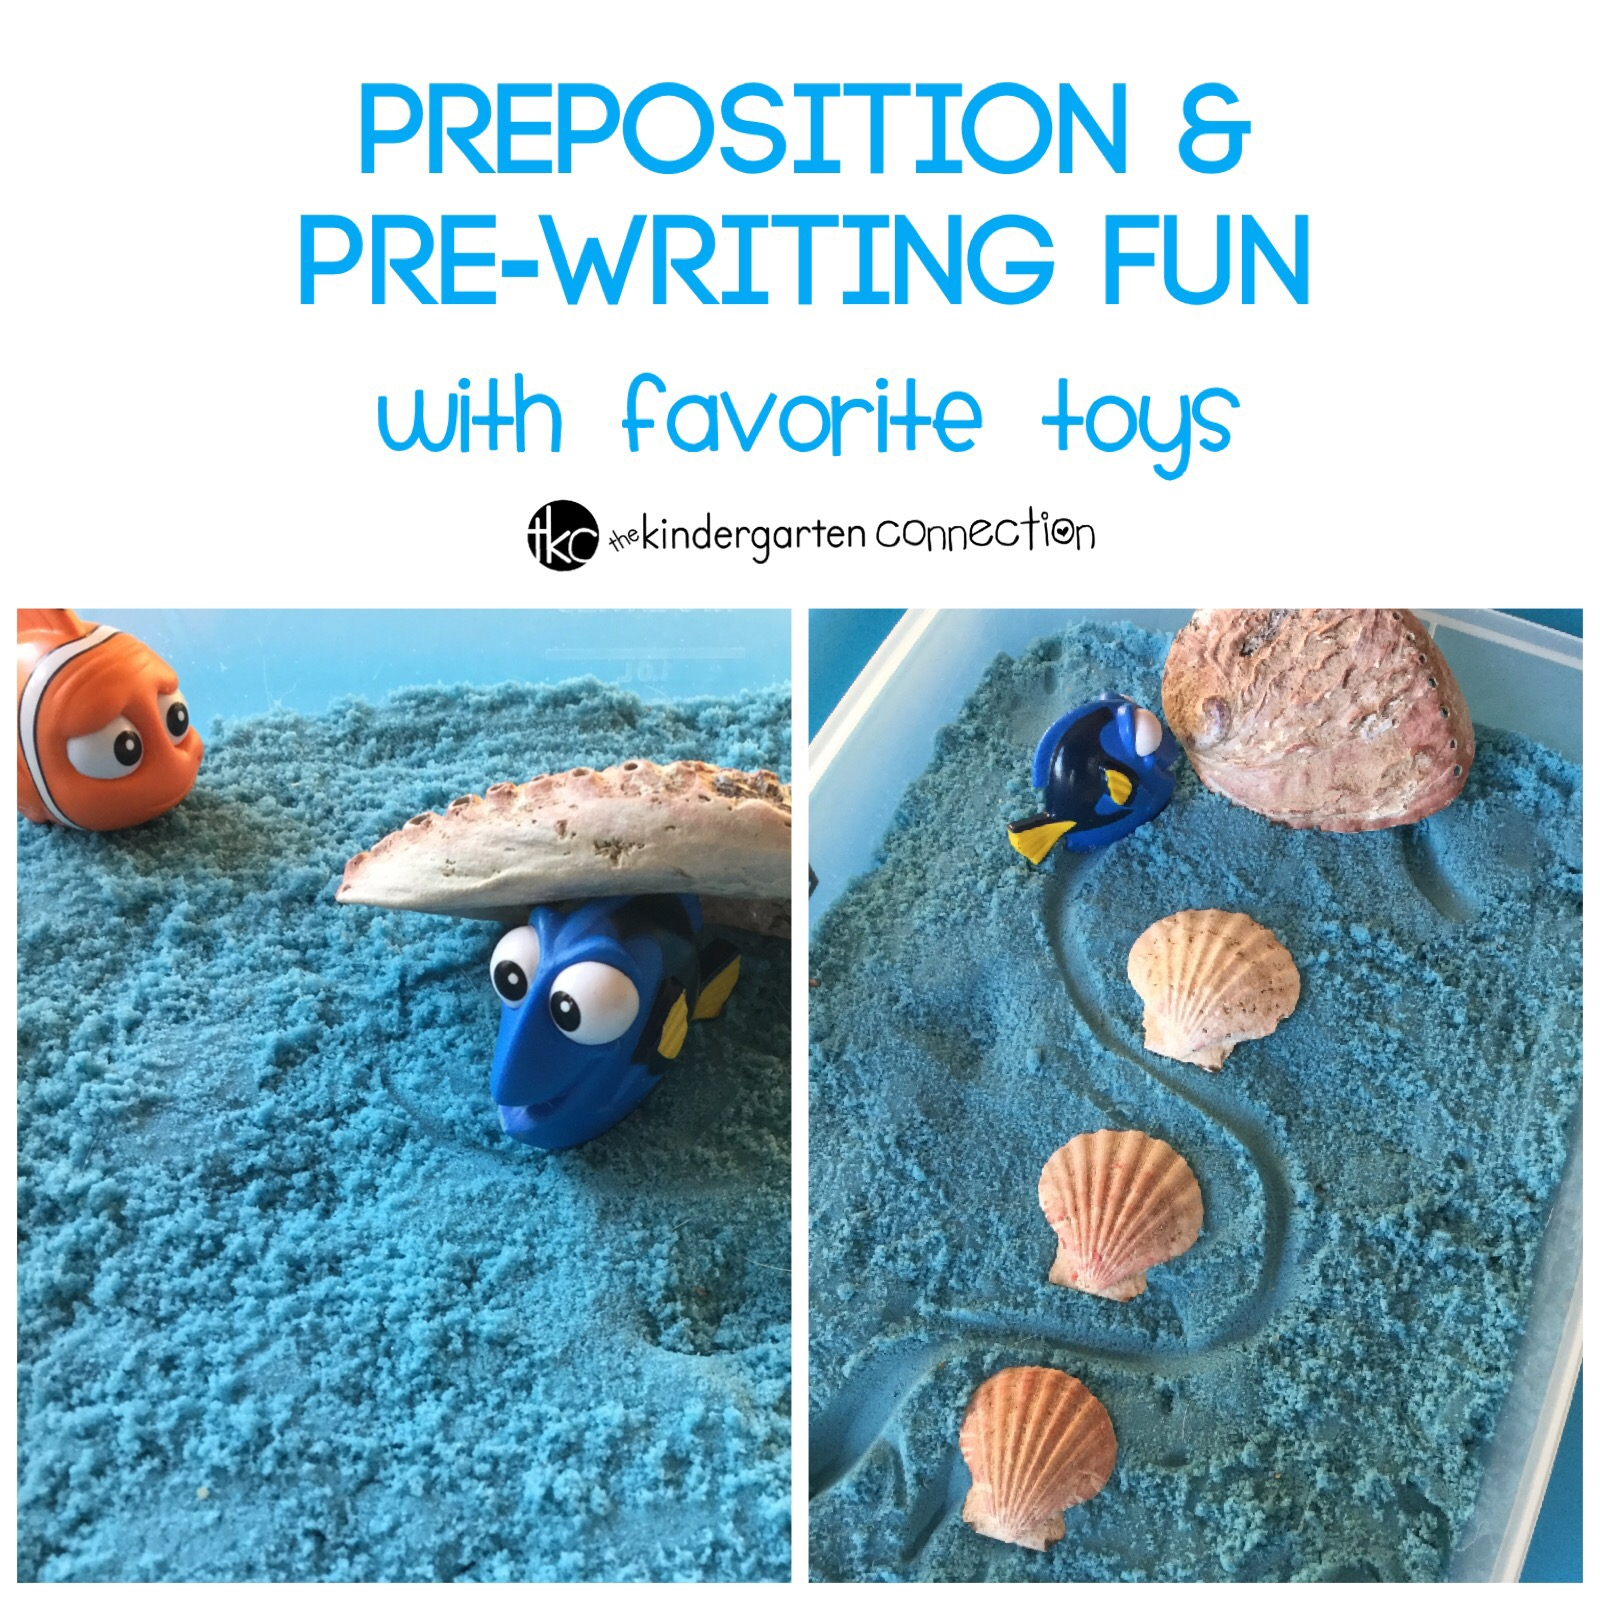 This preposition and pre-writing activity is super fun, and even uses favorite toys. Just add a sensory bin for lots of learning fun!